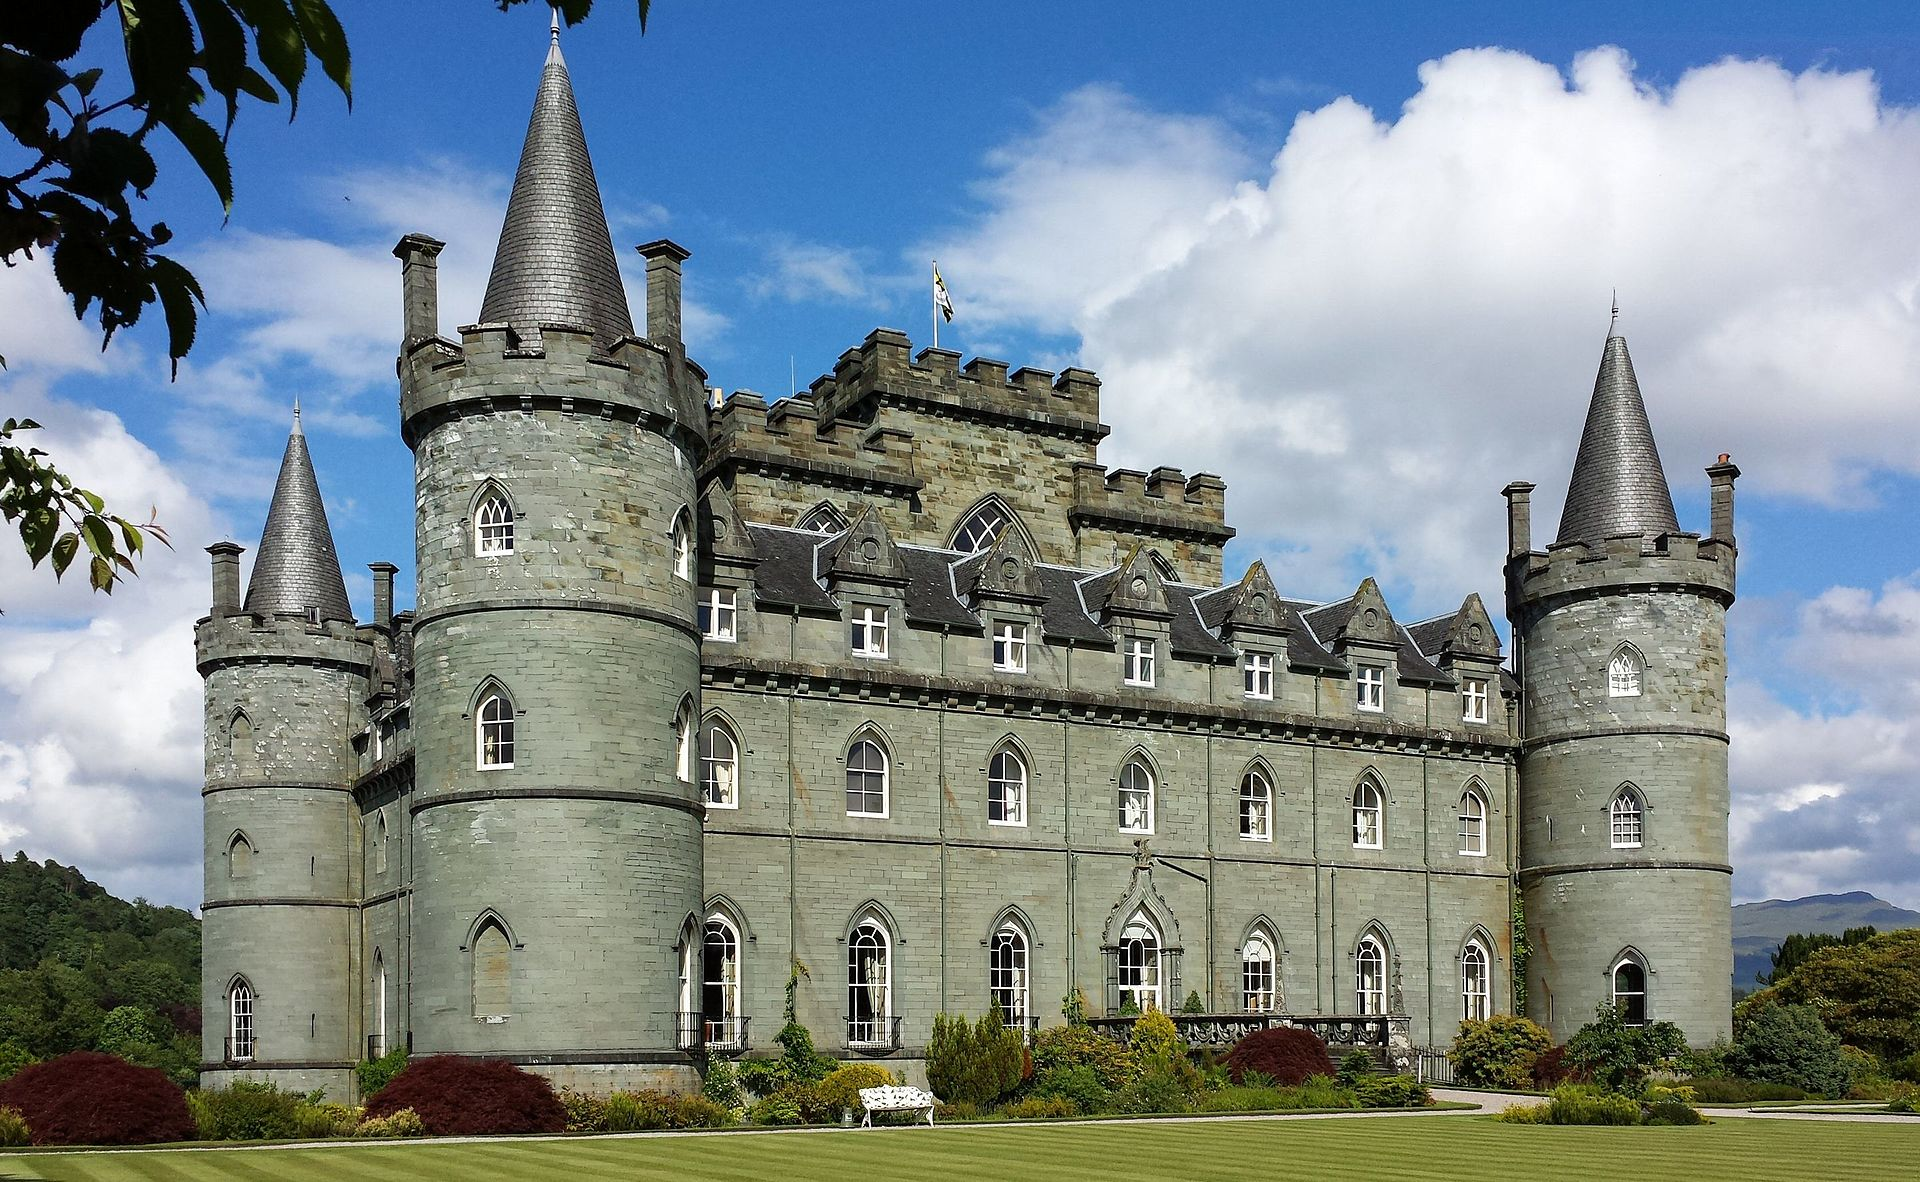 Picture of the Inveraray Castle